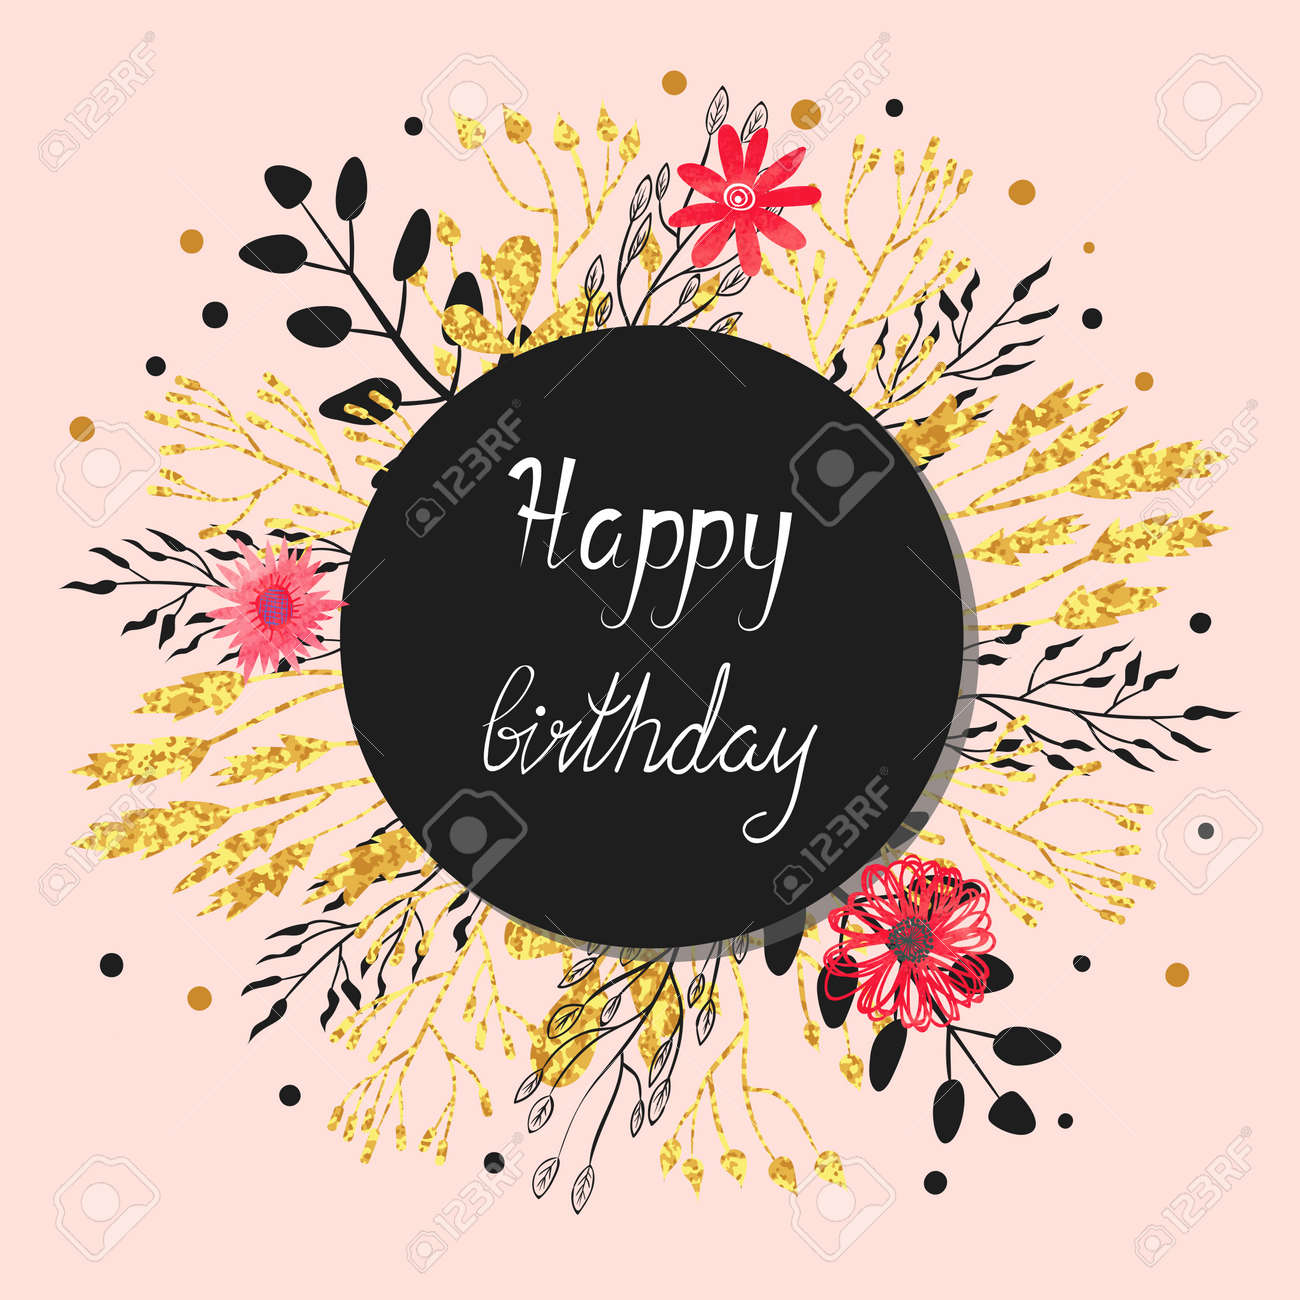 Happy Birthday Card Design Floral Circle Background Vector Round Illustration With Flowers Leaves